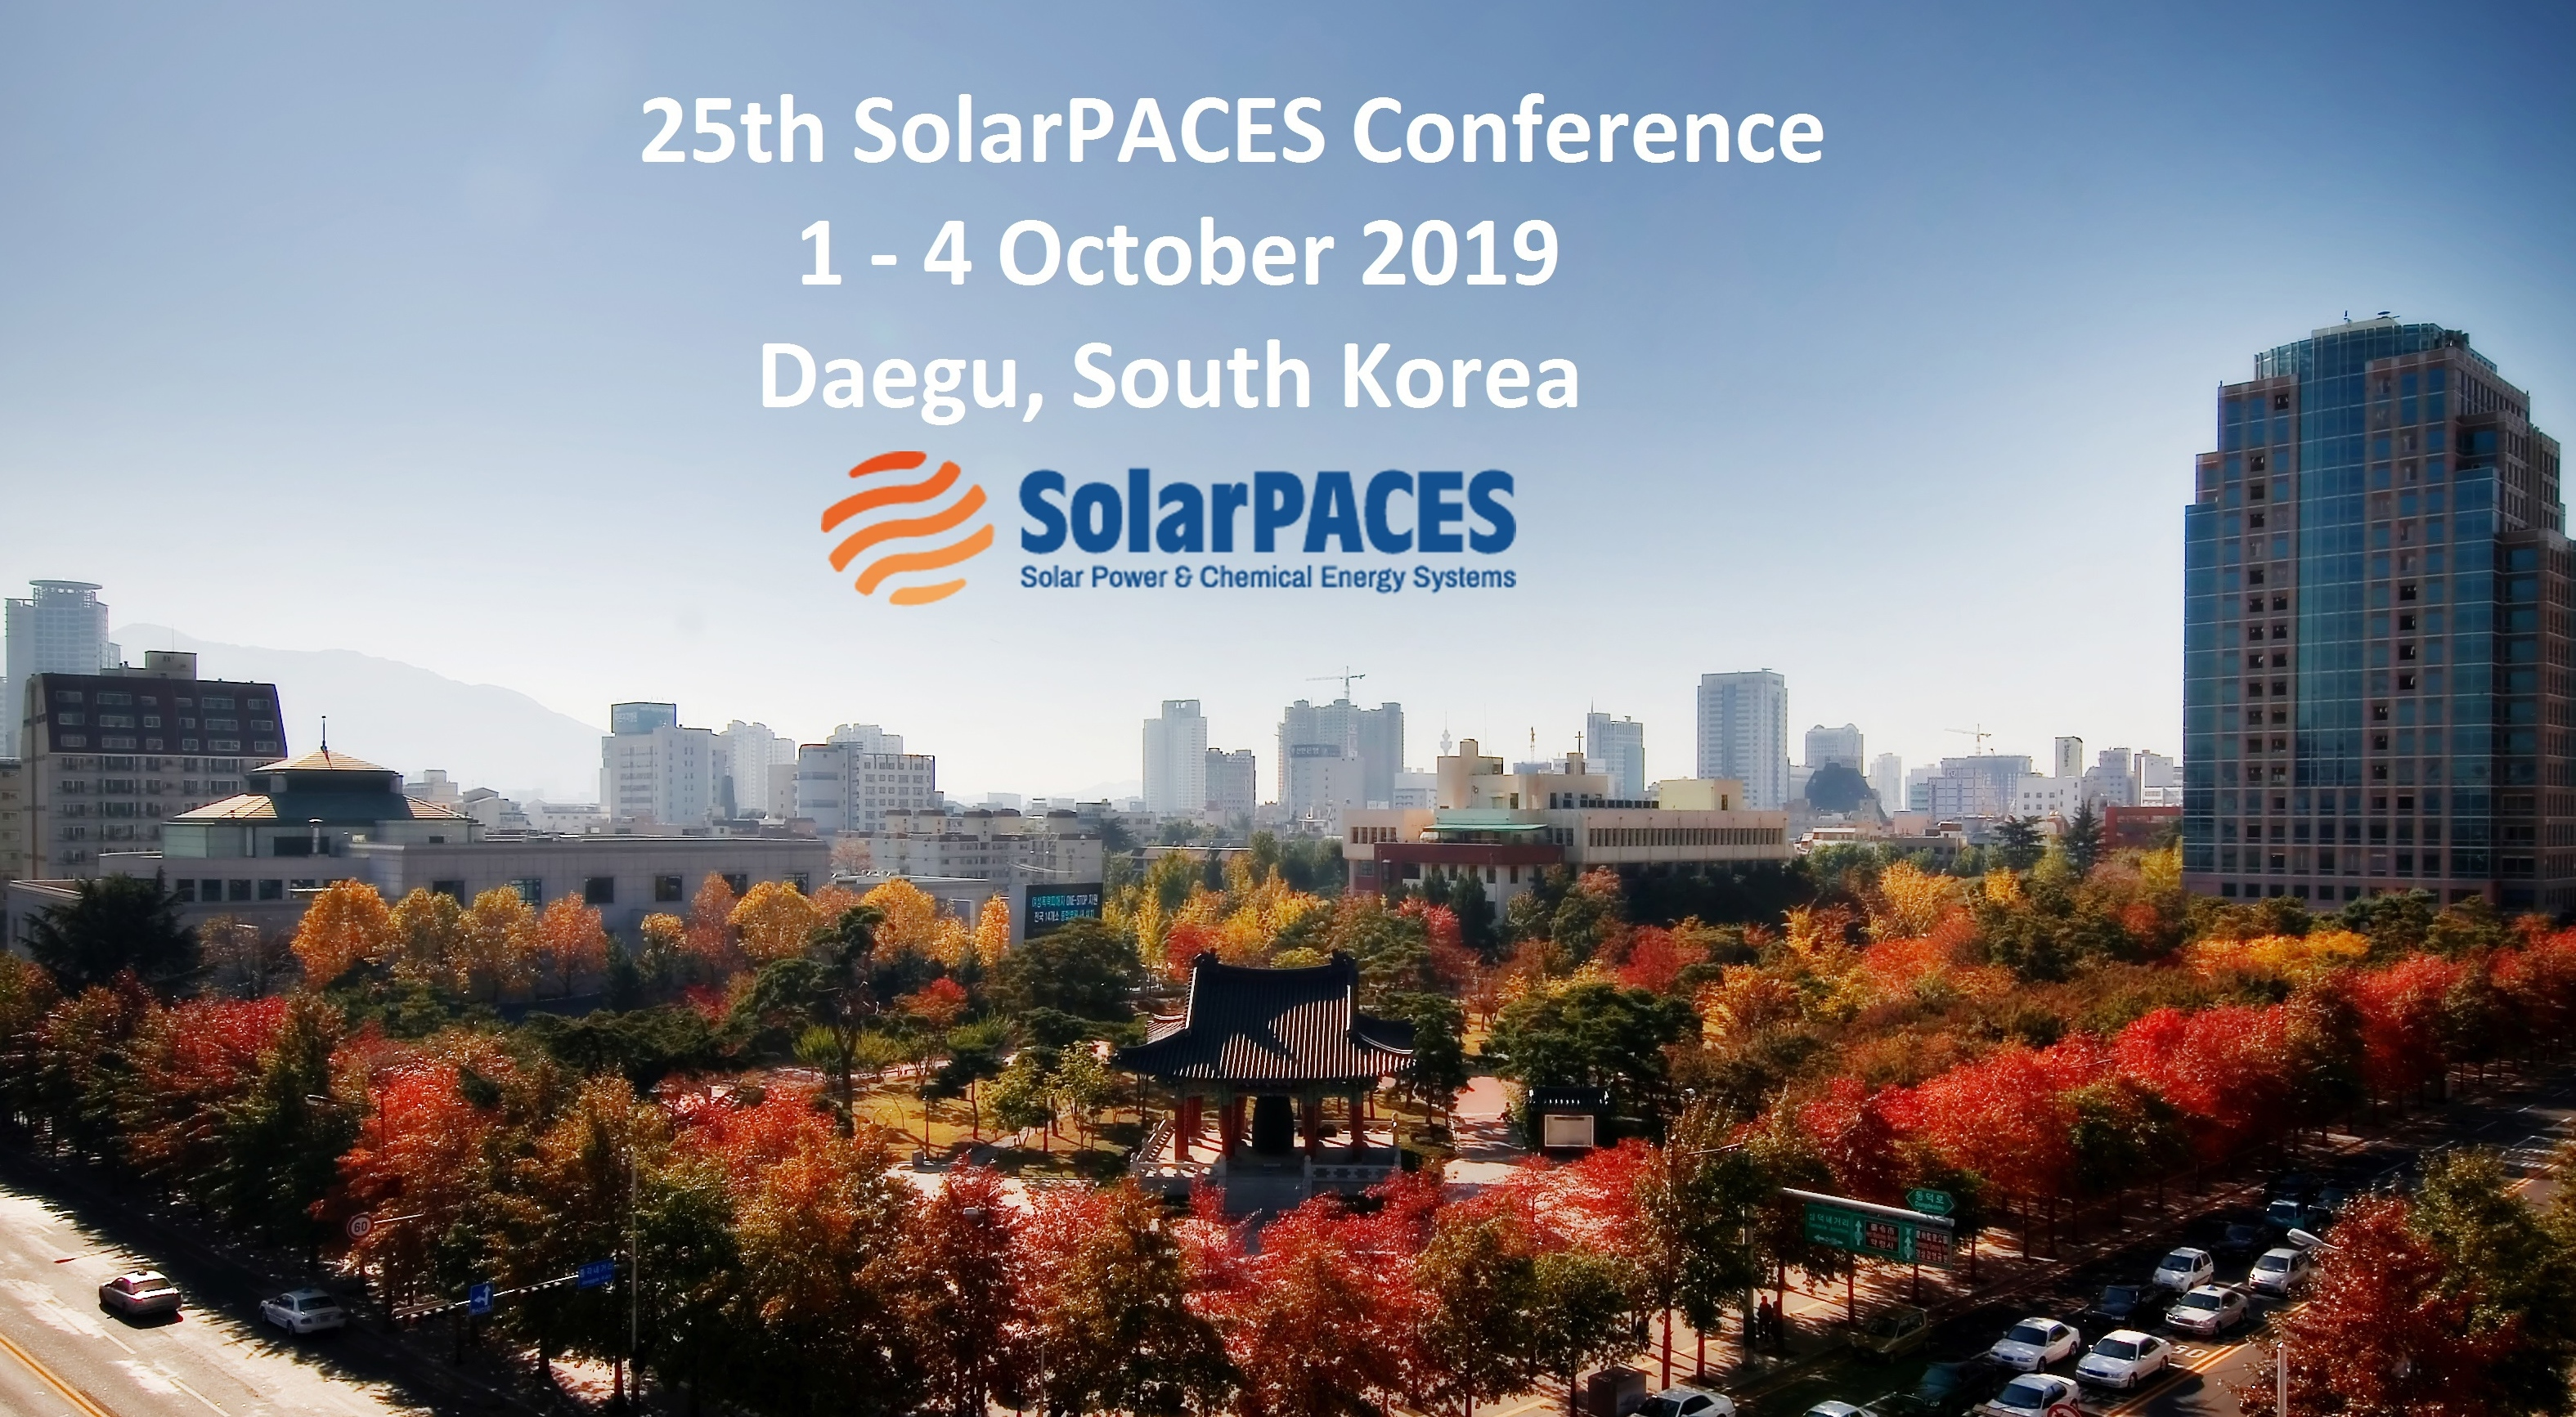 http://www.solarpaces-conference.org/home.html